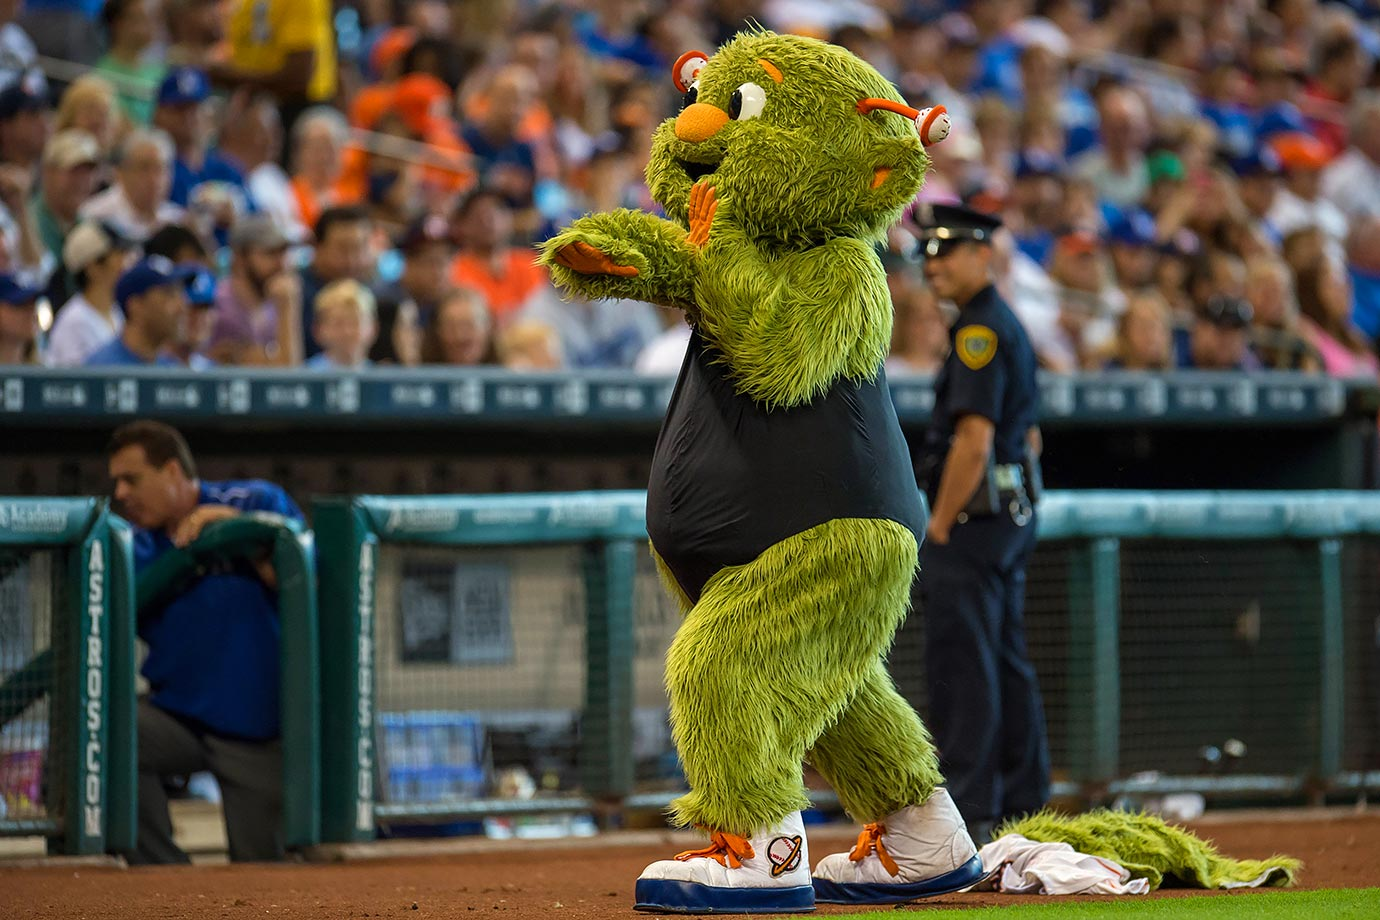 "It turns out Houston Astros mascot Orbit has some very advanced dance moves, as the baseball-loving alien showed off during a captivating performance of Beyoncé's hit song ""Single Ladies"" during a game on Aug. 23, 2015. Somehow most of the Minute Maid Park security guards were able to block out the beauty of the choreography and focus on their jobs, even after Orbit's mid-routine costume change."